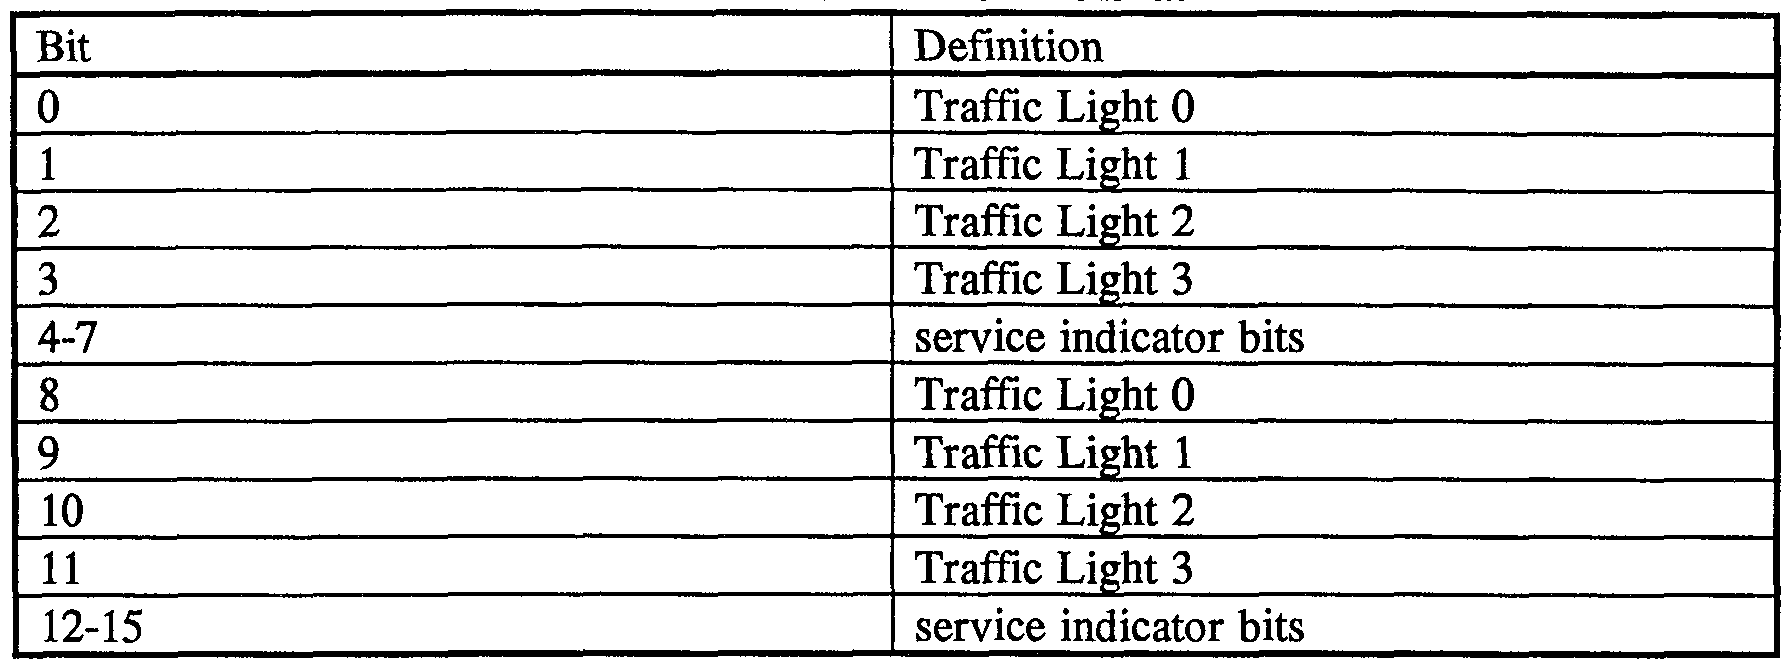 WO1998040972A2 - Code division multiple access communication system